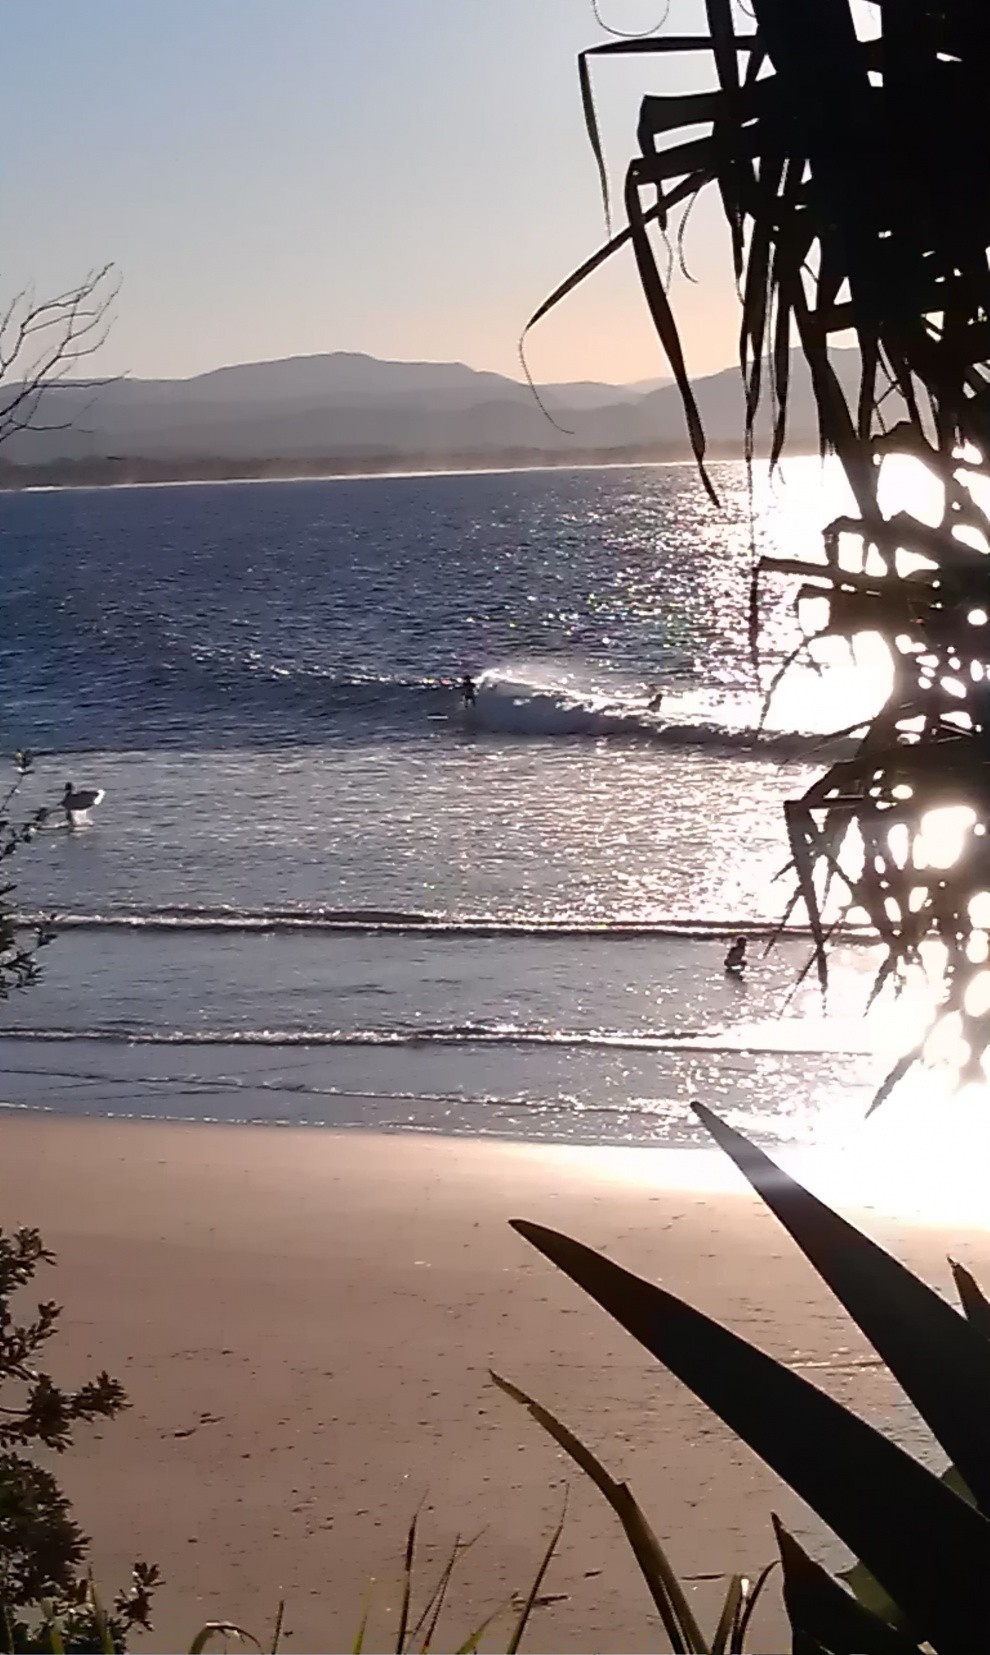 harveylegend's photo of Byron Bay